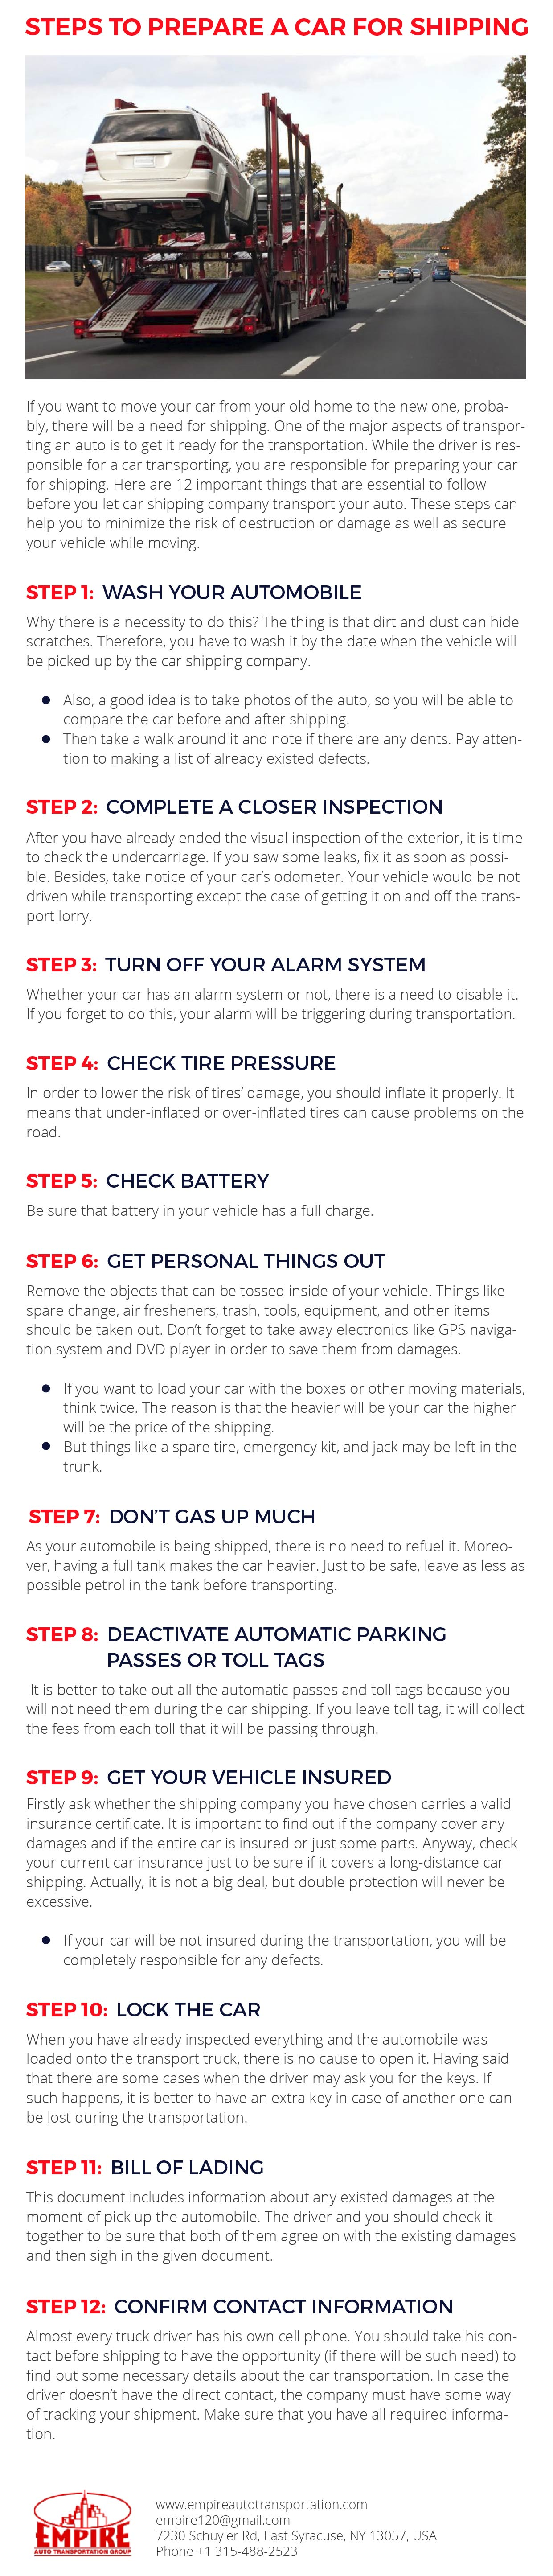 steps_to_prepare_a_car_for_shipping